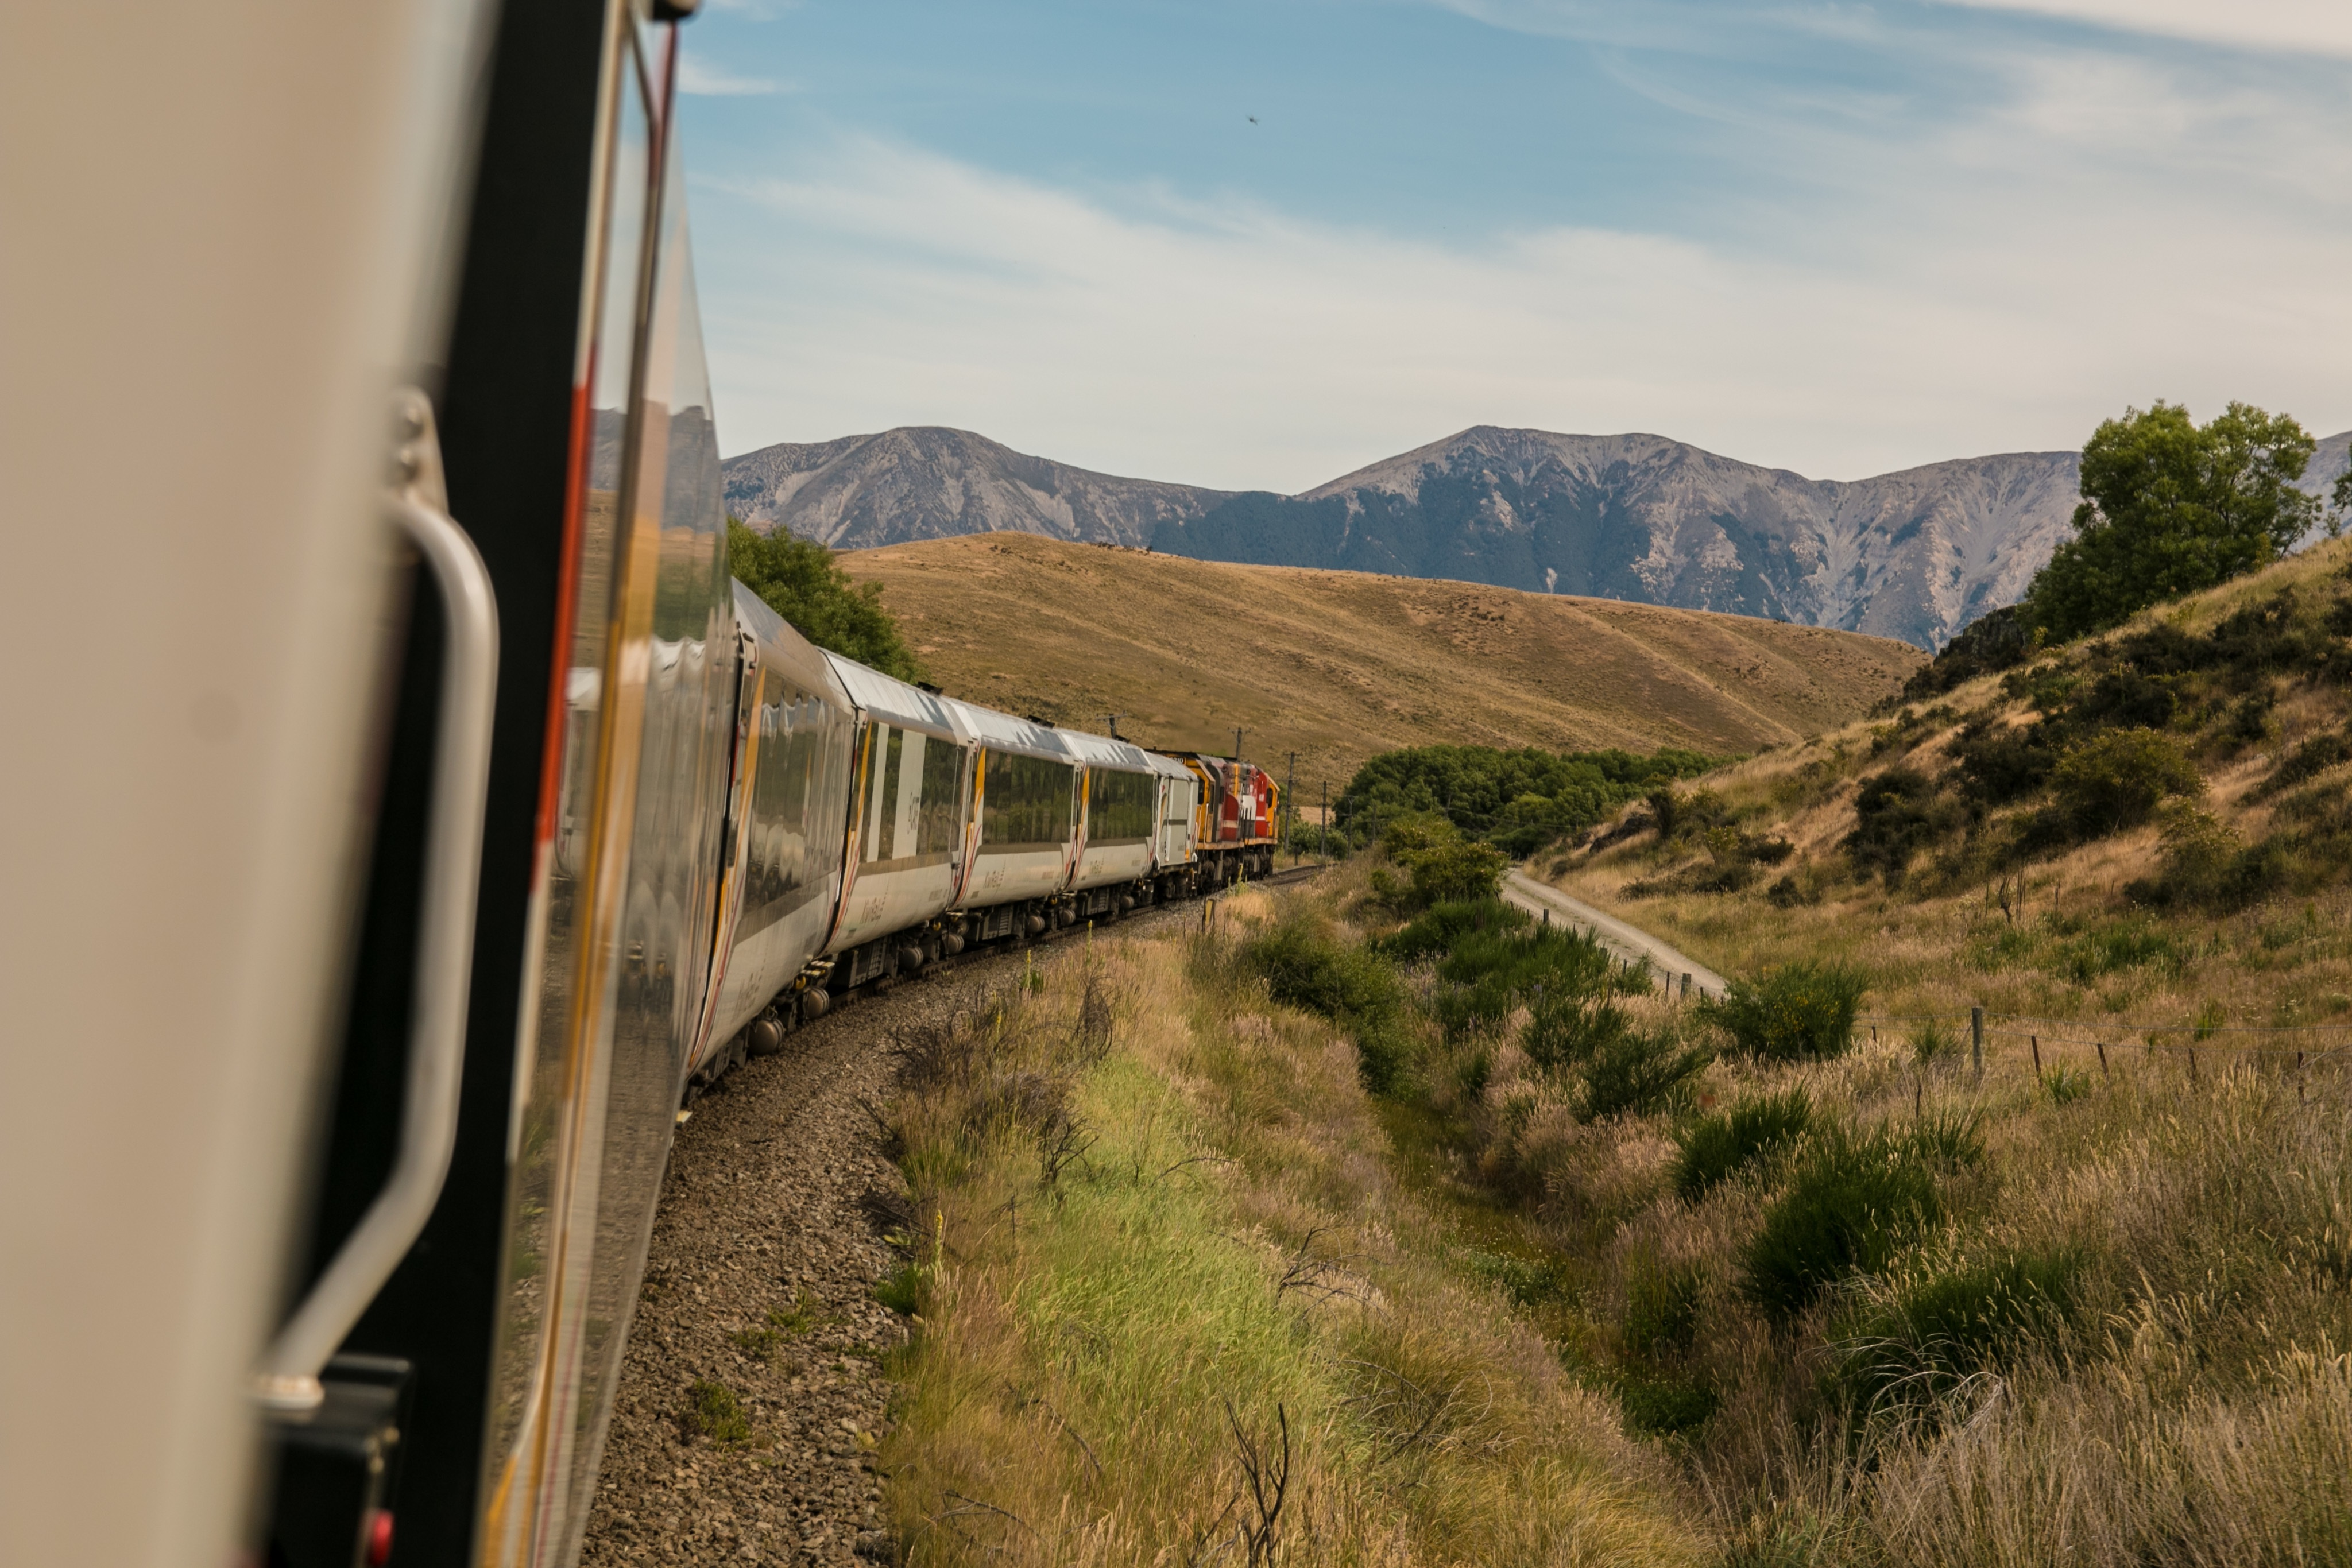 Train Travel, Train, Travel, Track, Mountain, HQ Photo